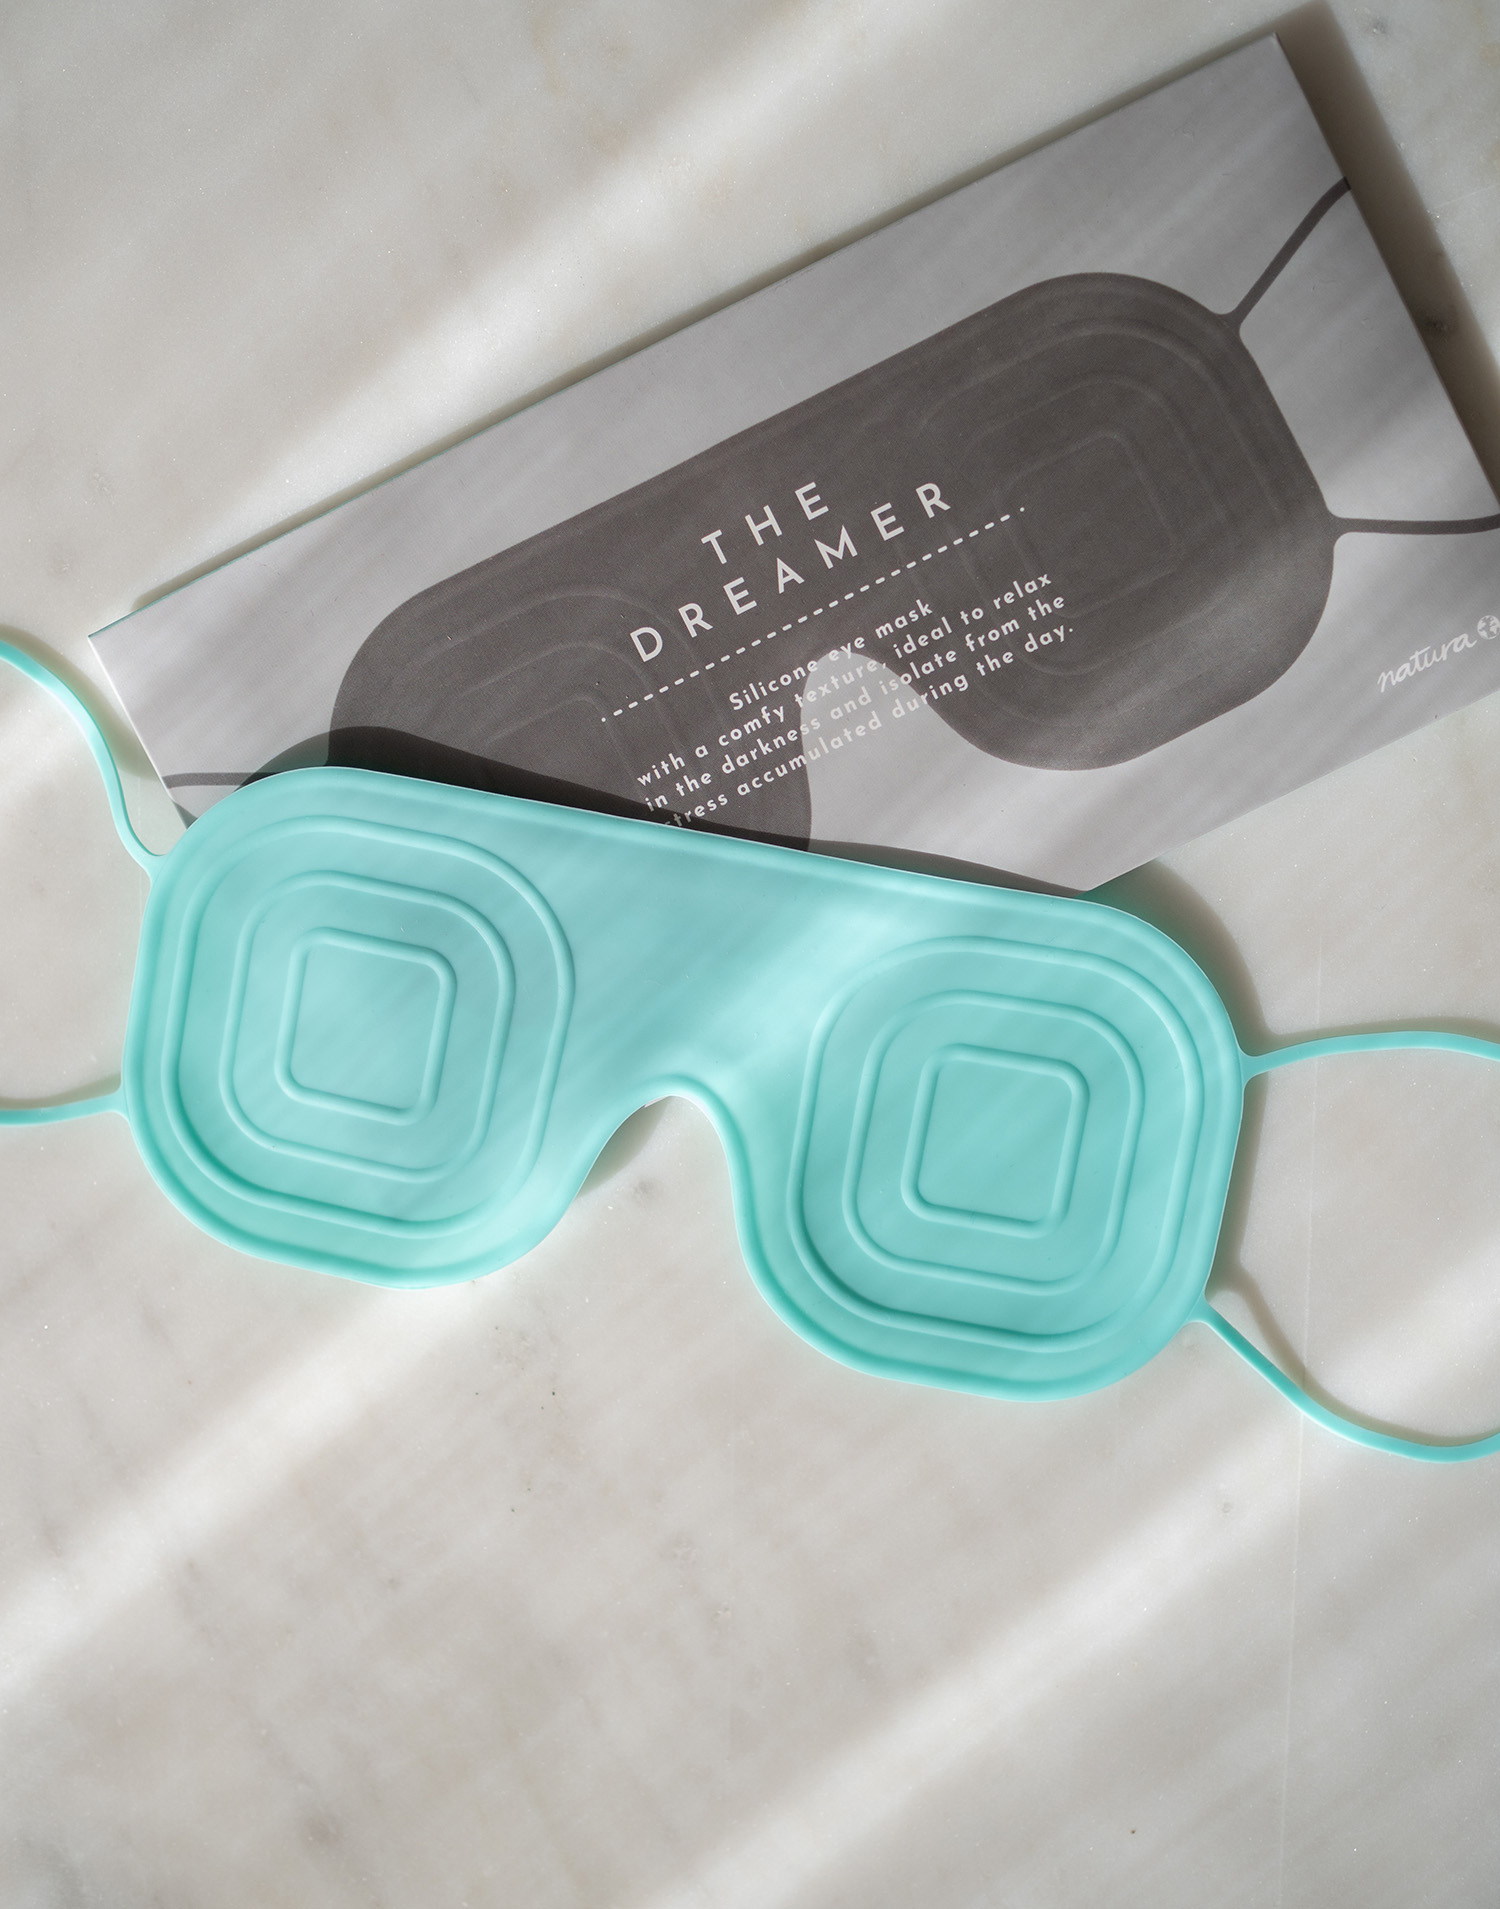 Silicone eye mask